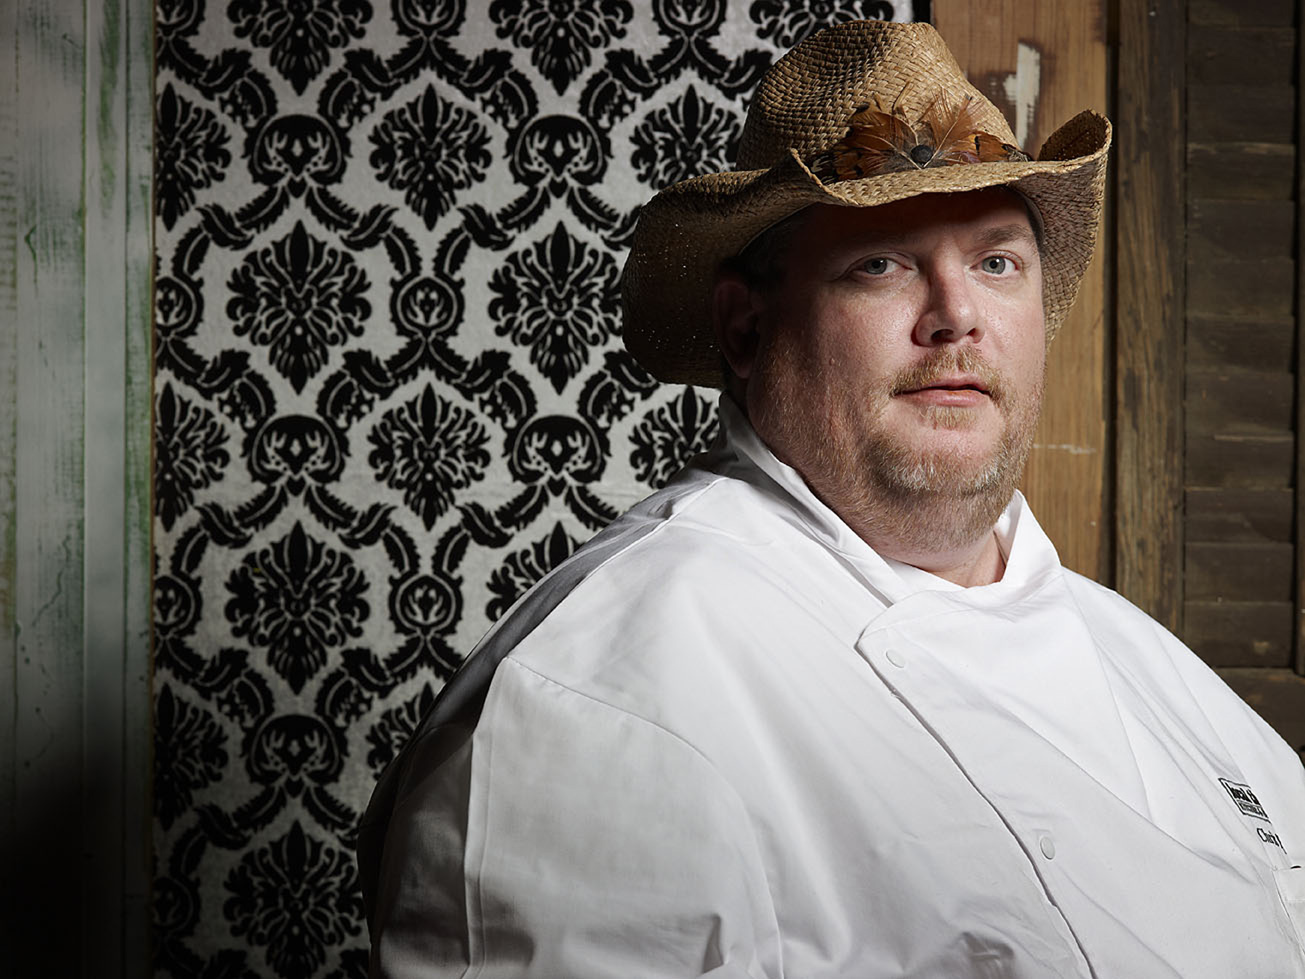 Chef Chris Hall of Atlanta's Local Three Kitchen &amp; Bar chats with City's Best. 